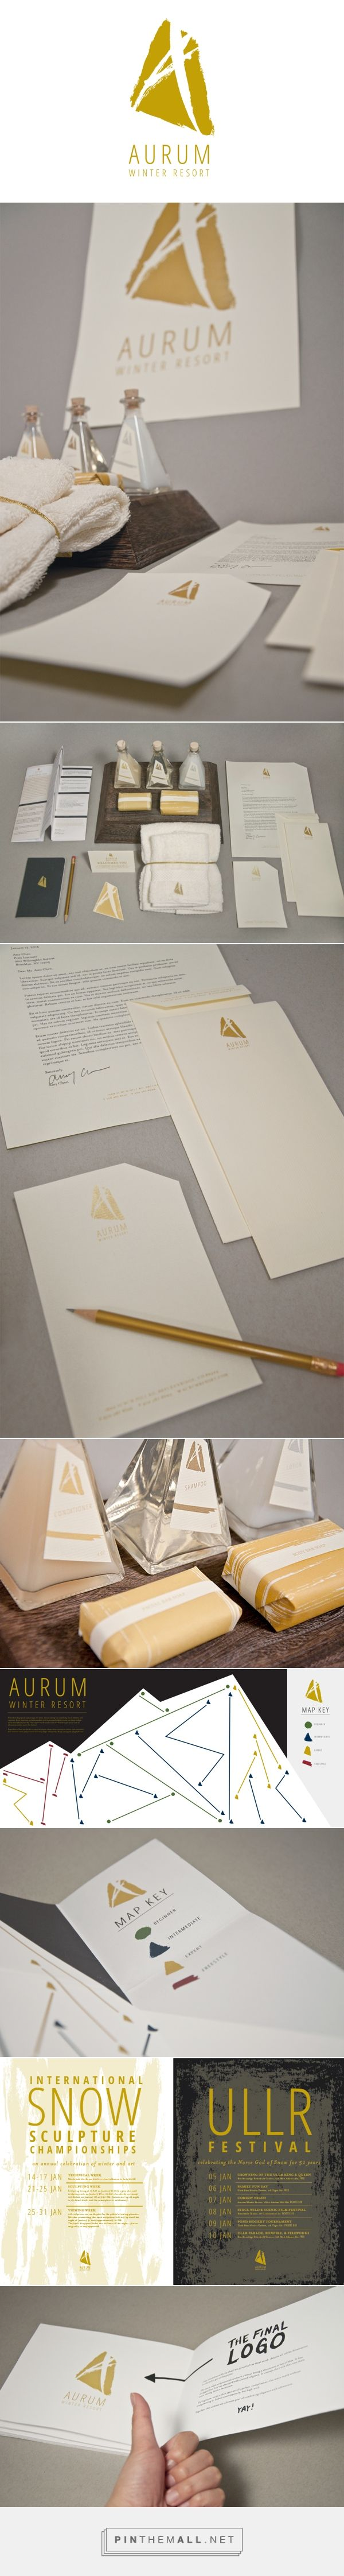 Aurum Winter Resort identity packaging branding on Behance by Amy Chen curated by Packaging Diva PD. Makes you want to visit Colorado in search of gold.